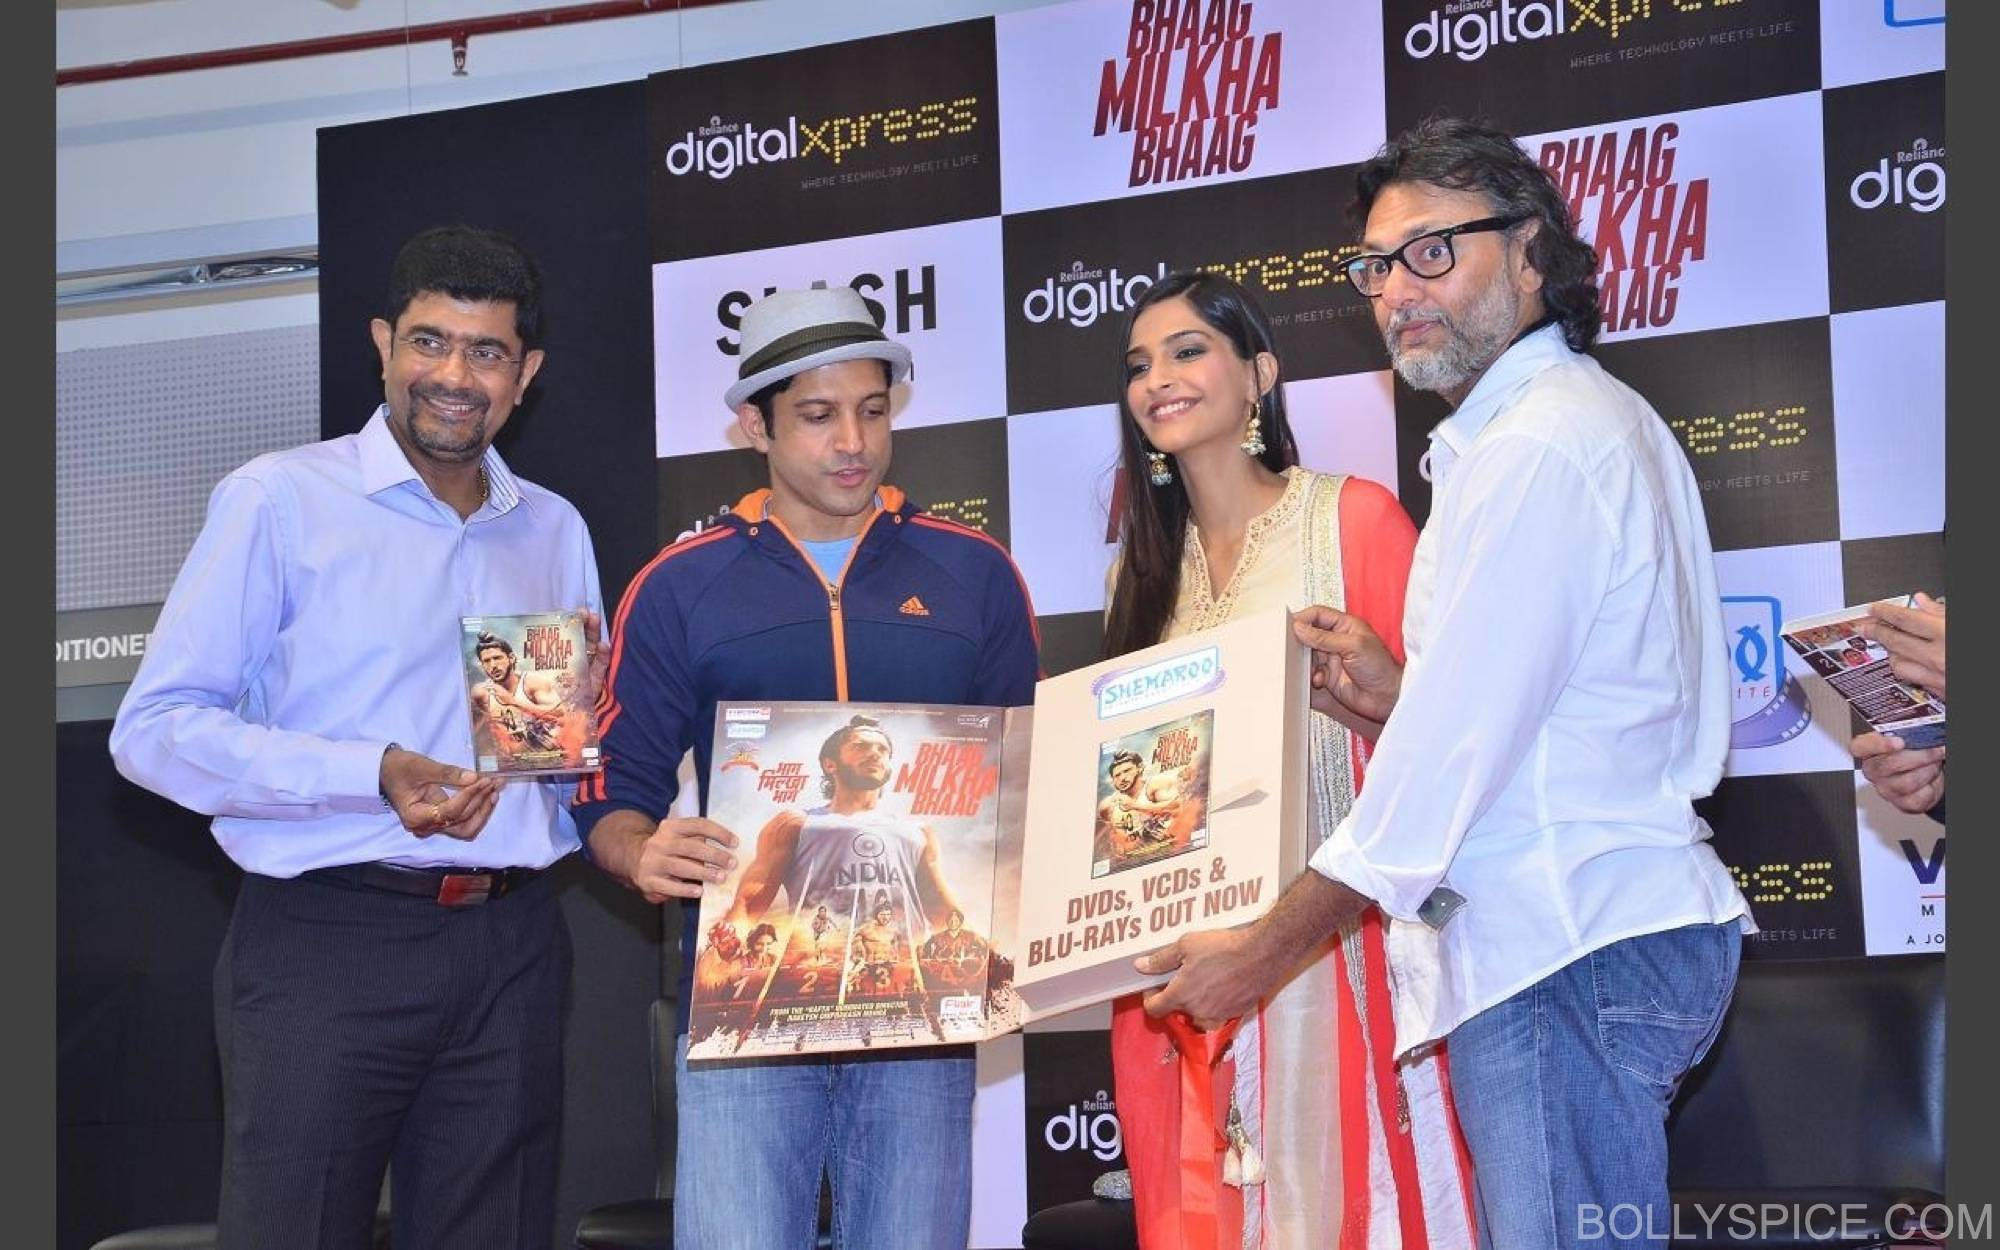 BMBDVDlaunch2 Bhaag Milkha Bhaag DVD Launch!